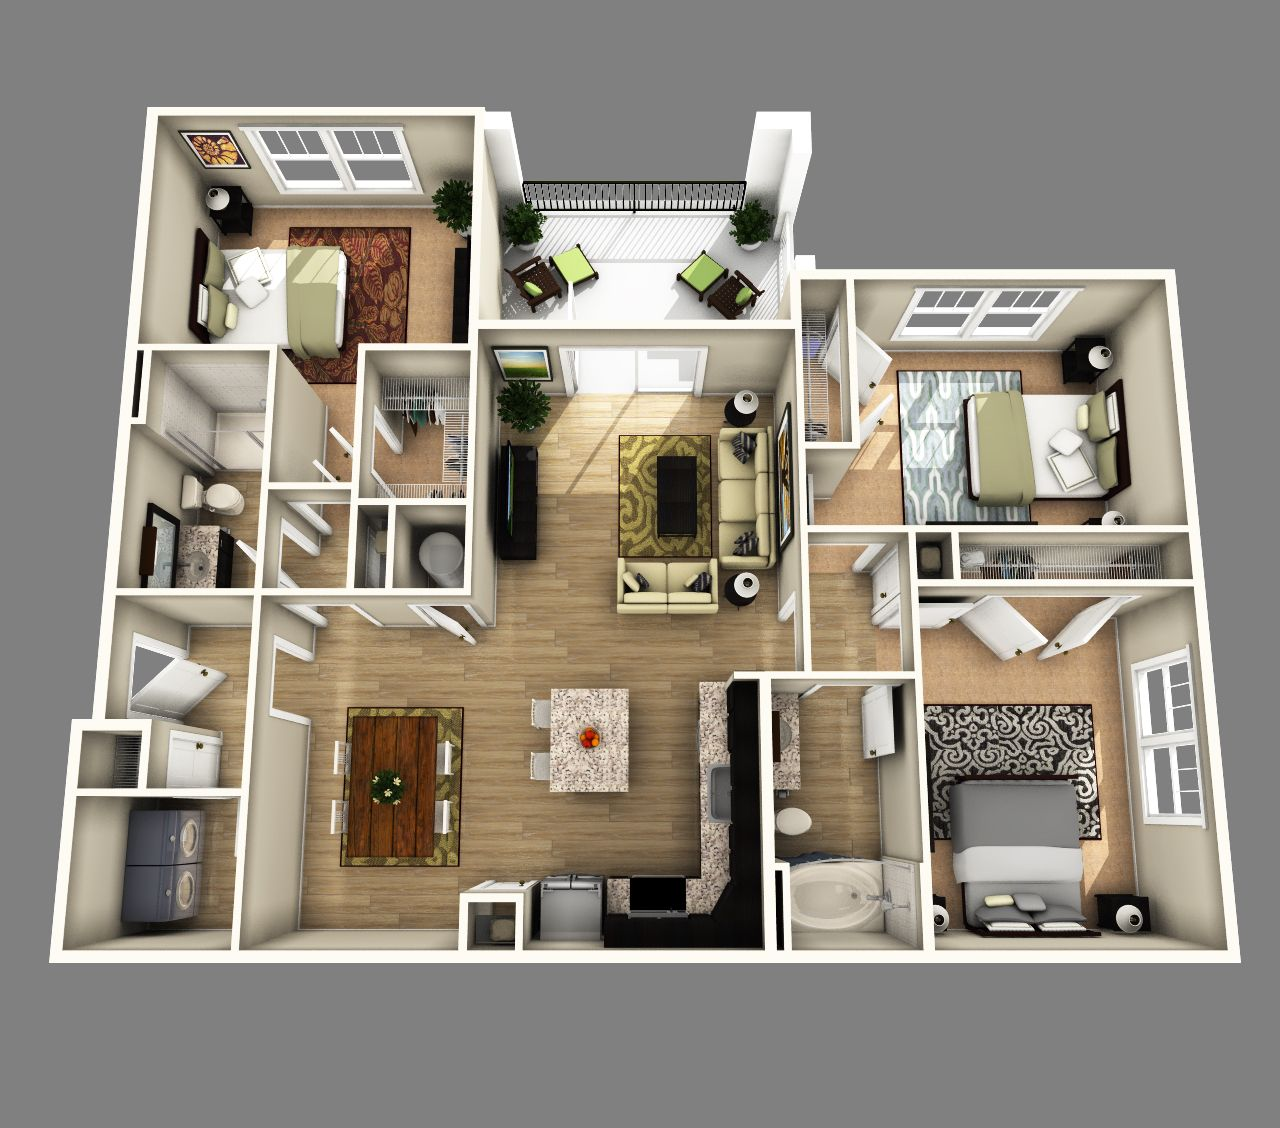 3d open floor plan 3 bedroom 2 bathroom google search for 4 bedroom 3 bathroom